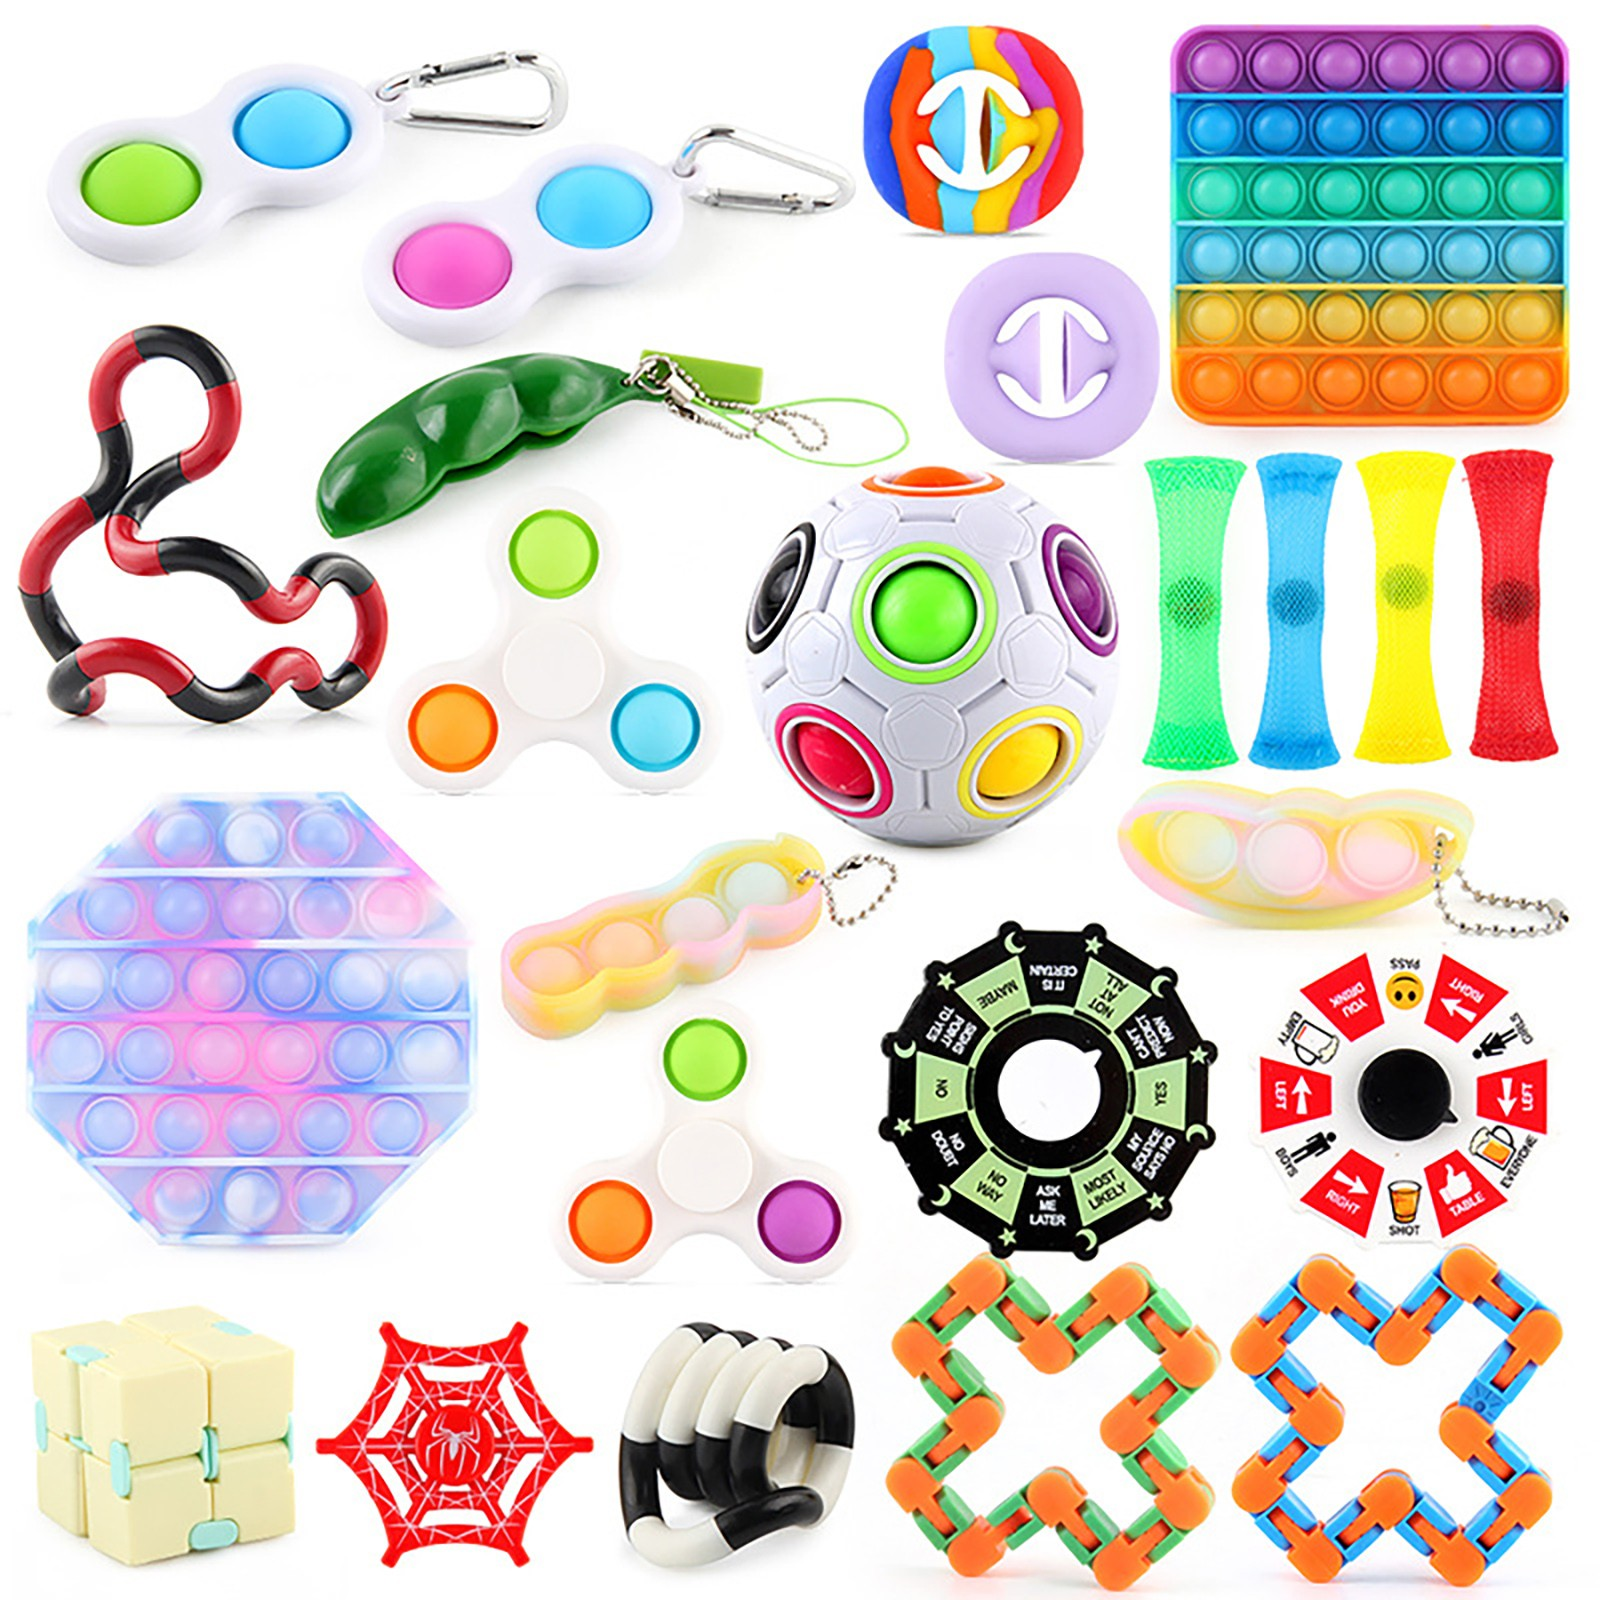 A Pack Fidget Sensory Toy Set Stress Relief Toys Autism Anxiety Relief Stress fidjets img4